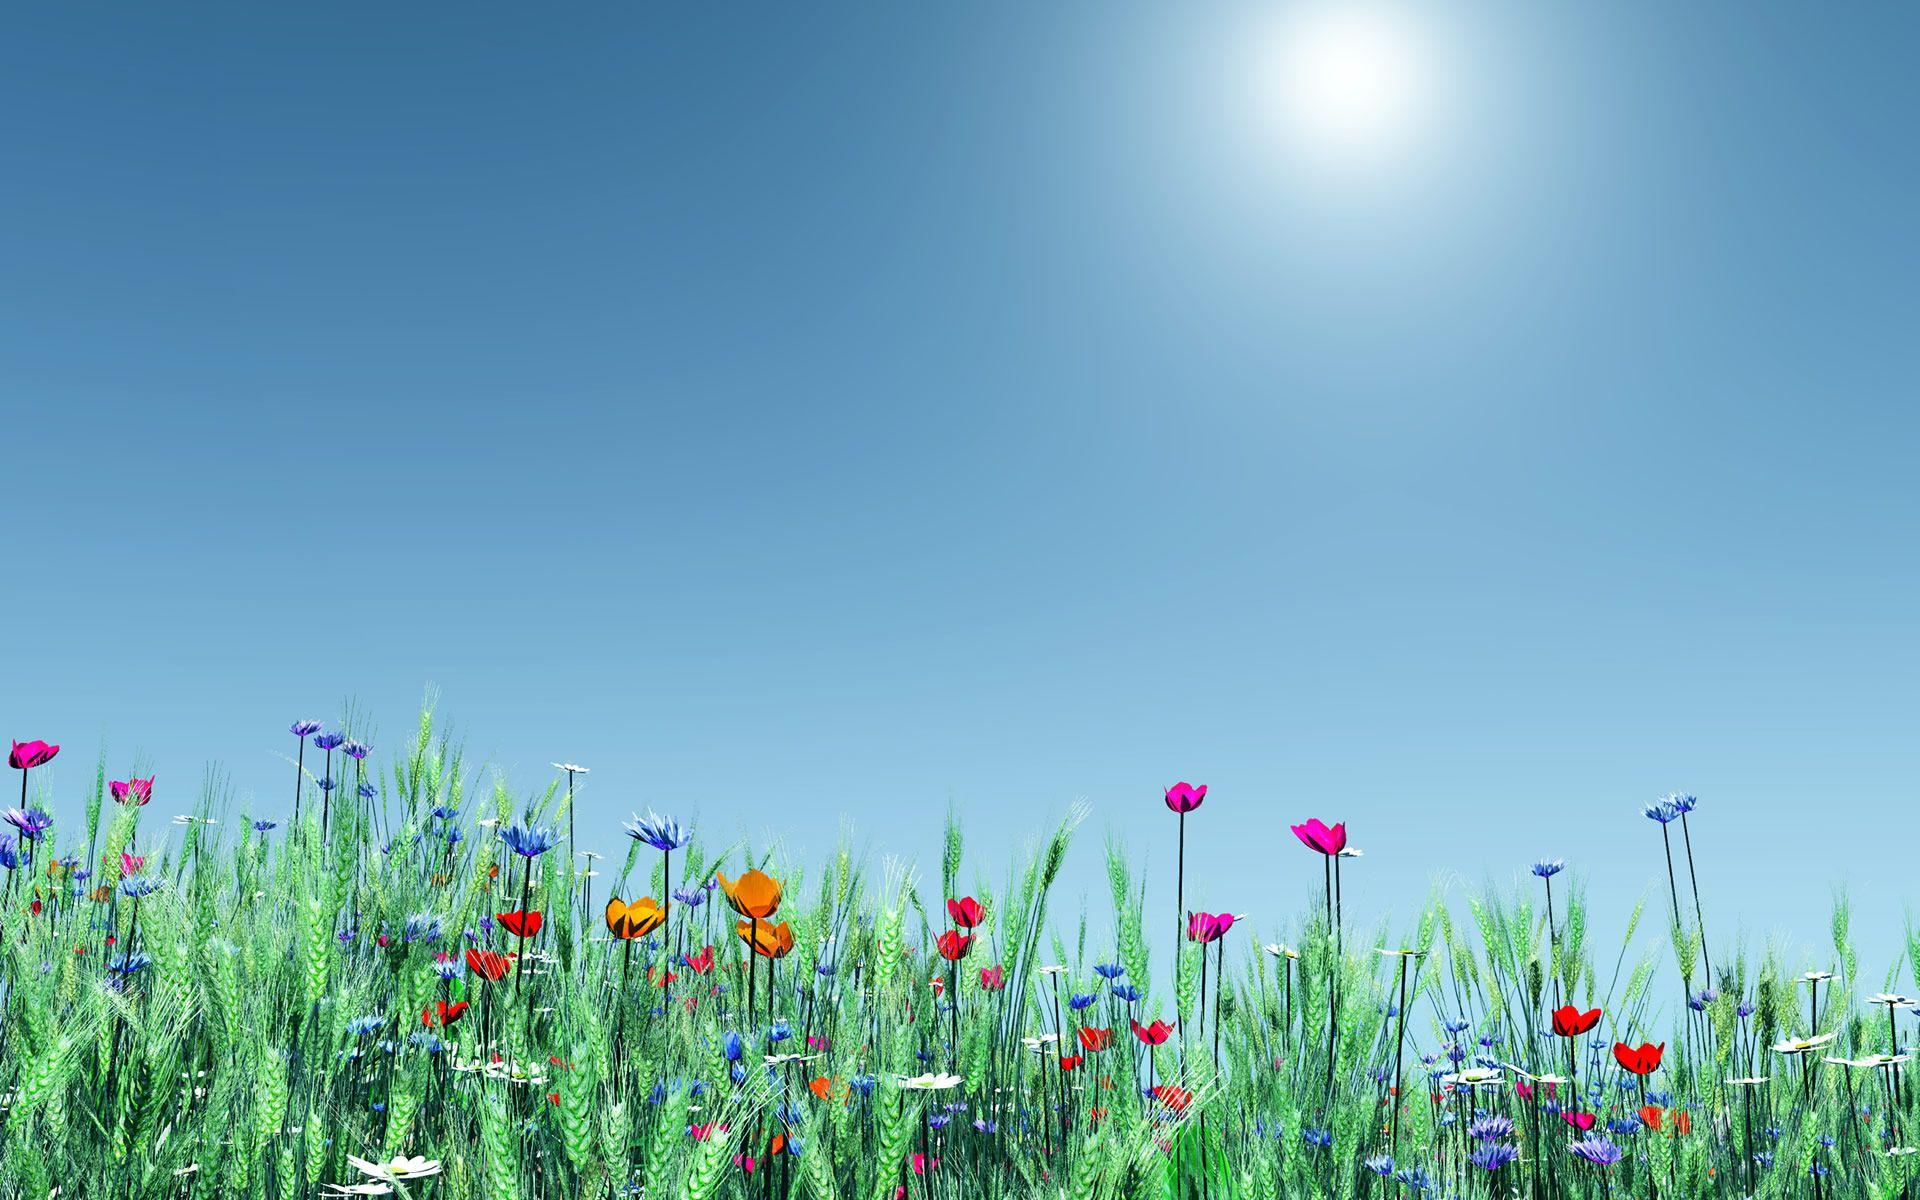 Spring-Flowers-Wallpapers.jpg - Clip Art Library